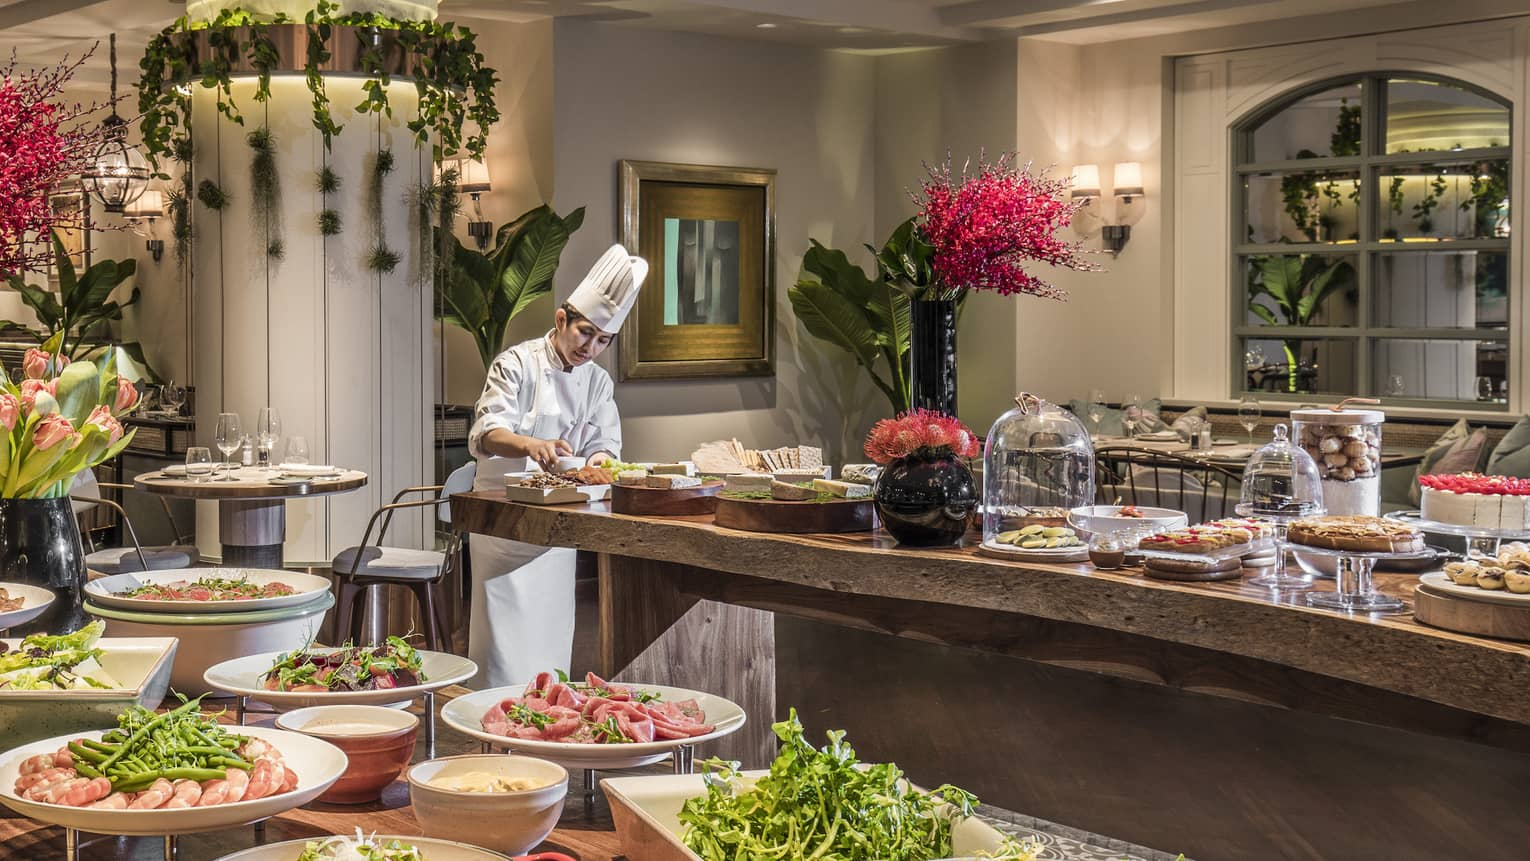 A lunch buffet arranged with platters of seafood, fresh vegetables and a large variety of other options at the One Ninety Restaurant